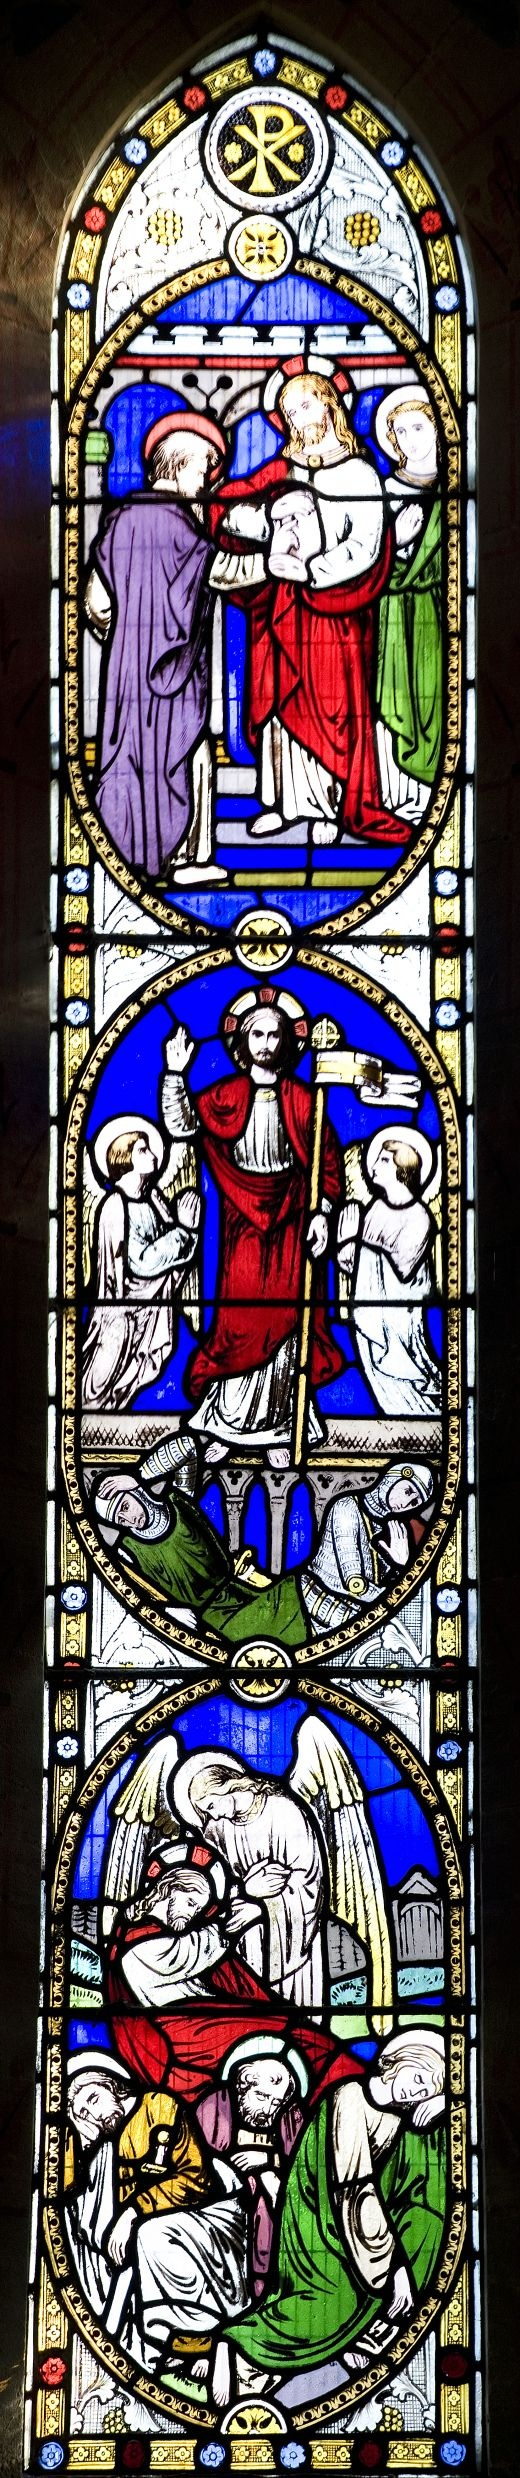 Leafield-Church Stained Glass